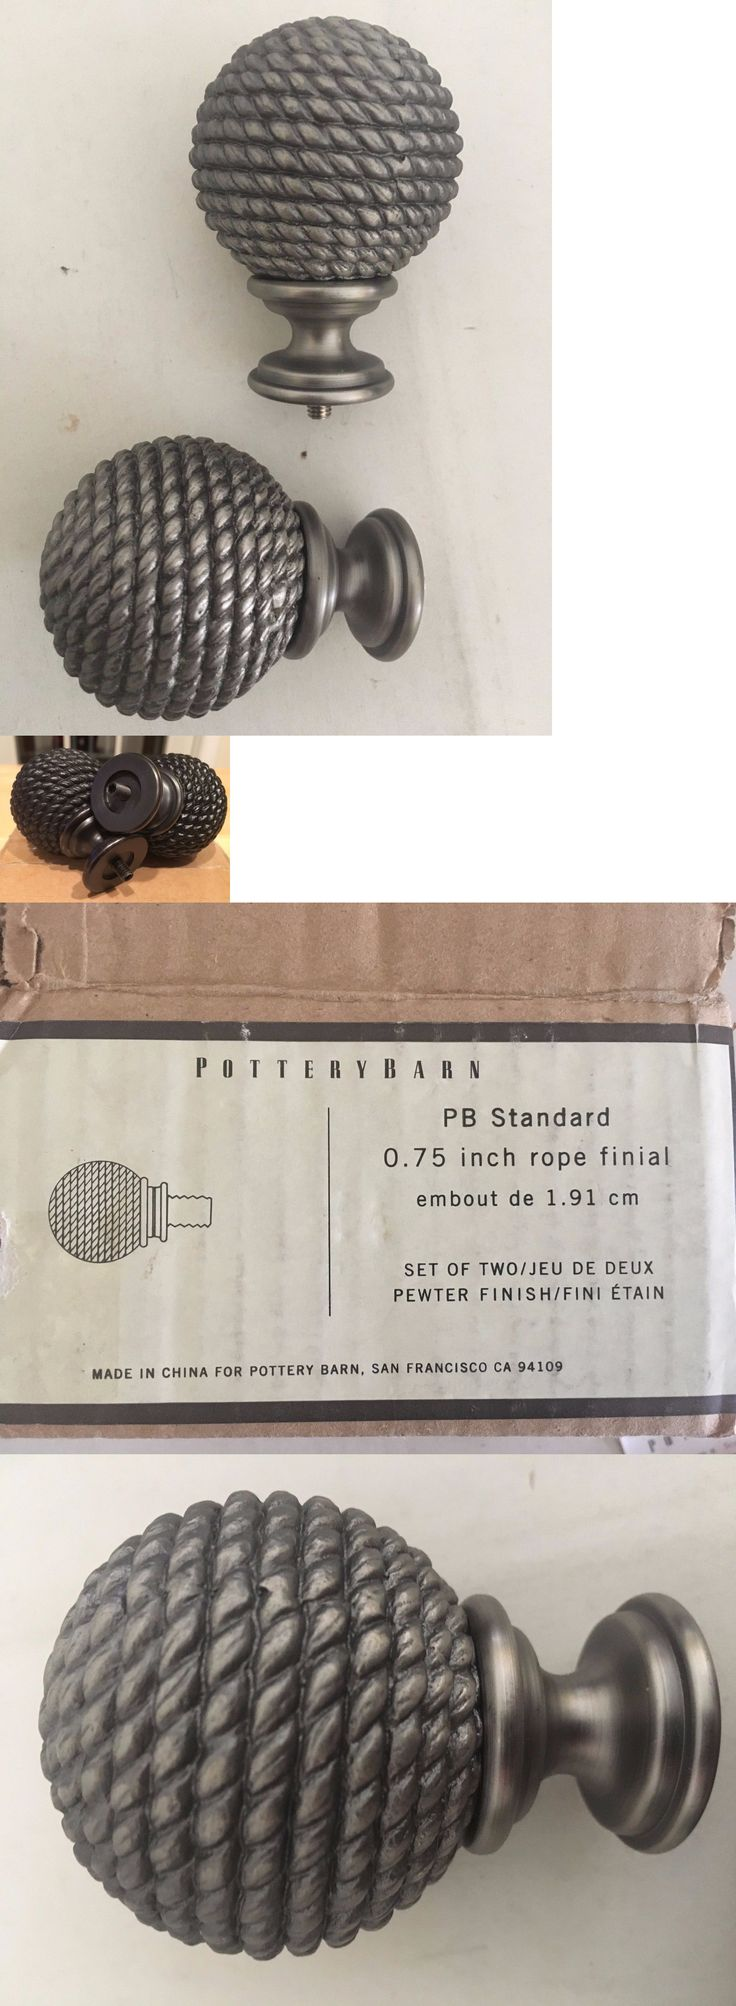 Curtain Rods And Finials 103459: Nib Pottery Barn Set 2 Rope Pewter Bronze  0.75 Curtain